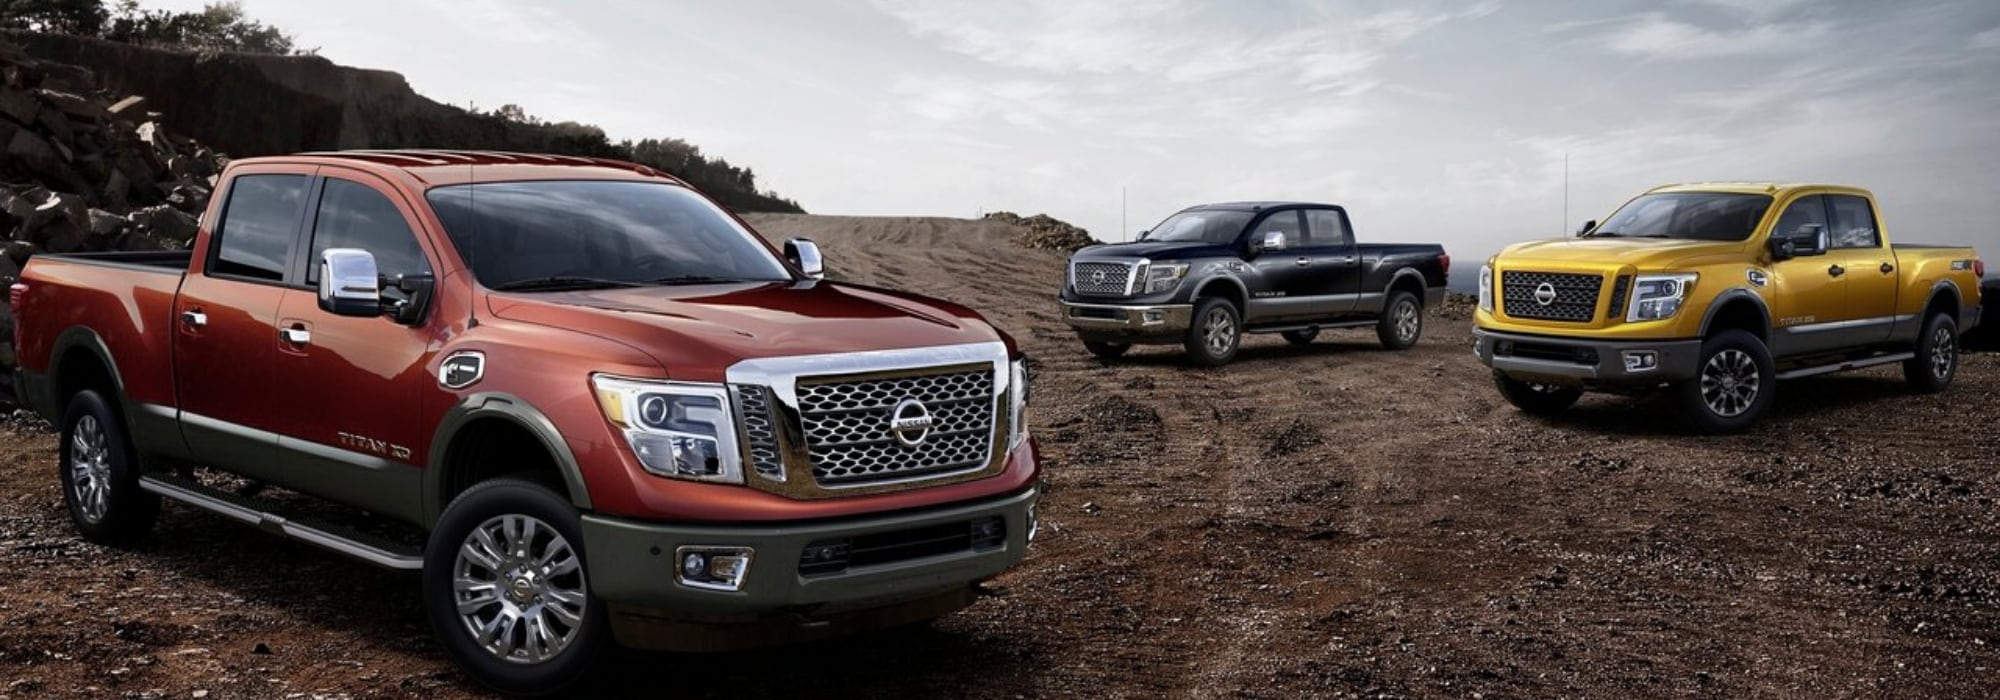 Used Nissan Trucks for Sale in Colorado Springs